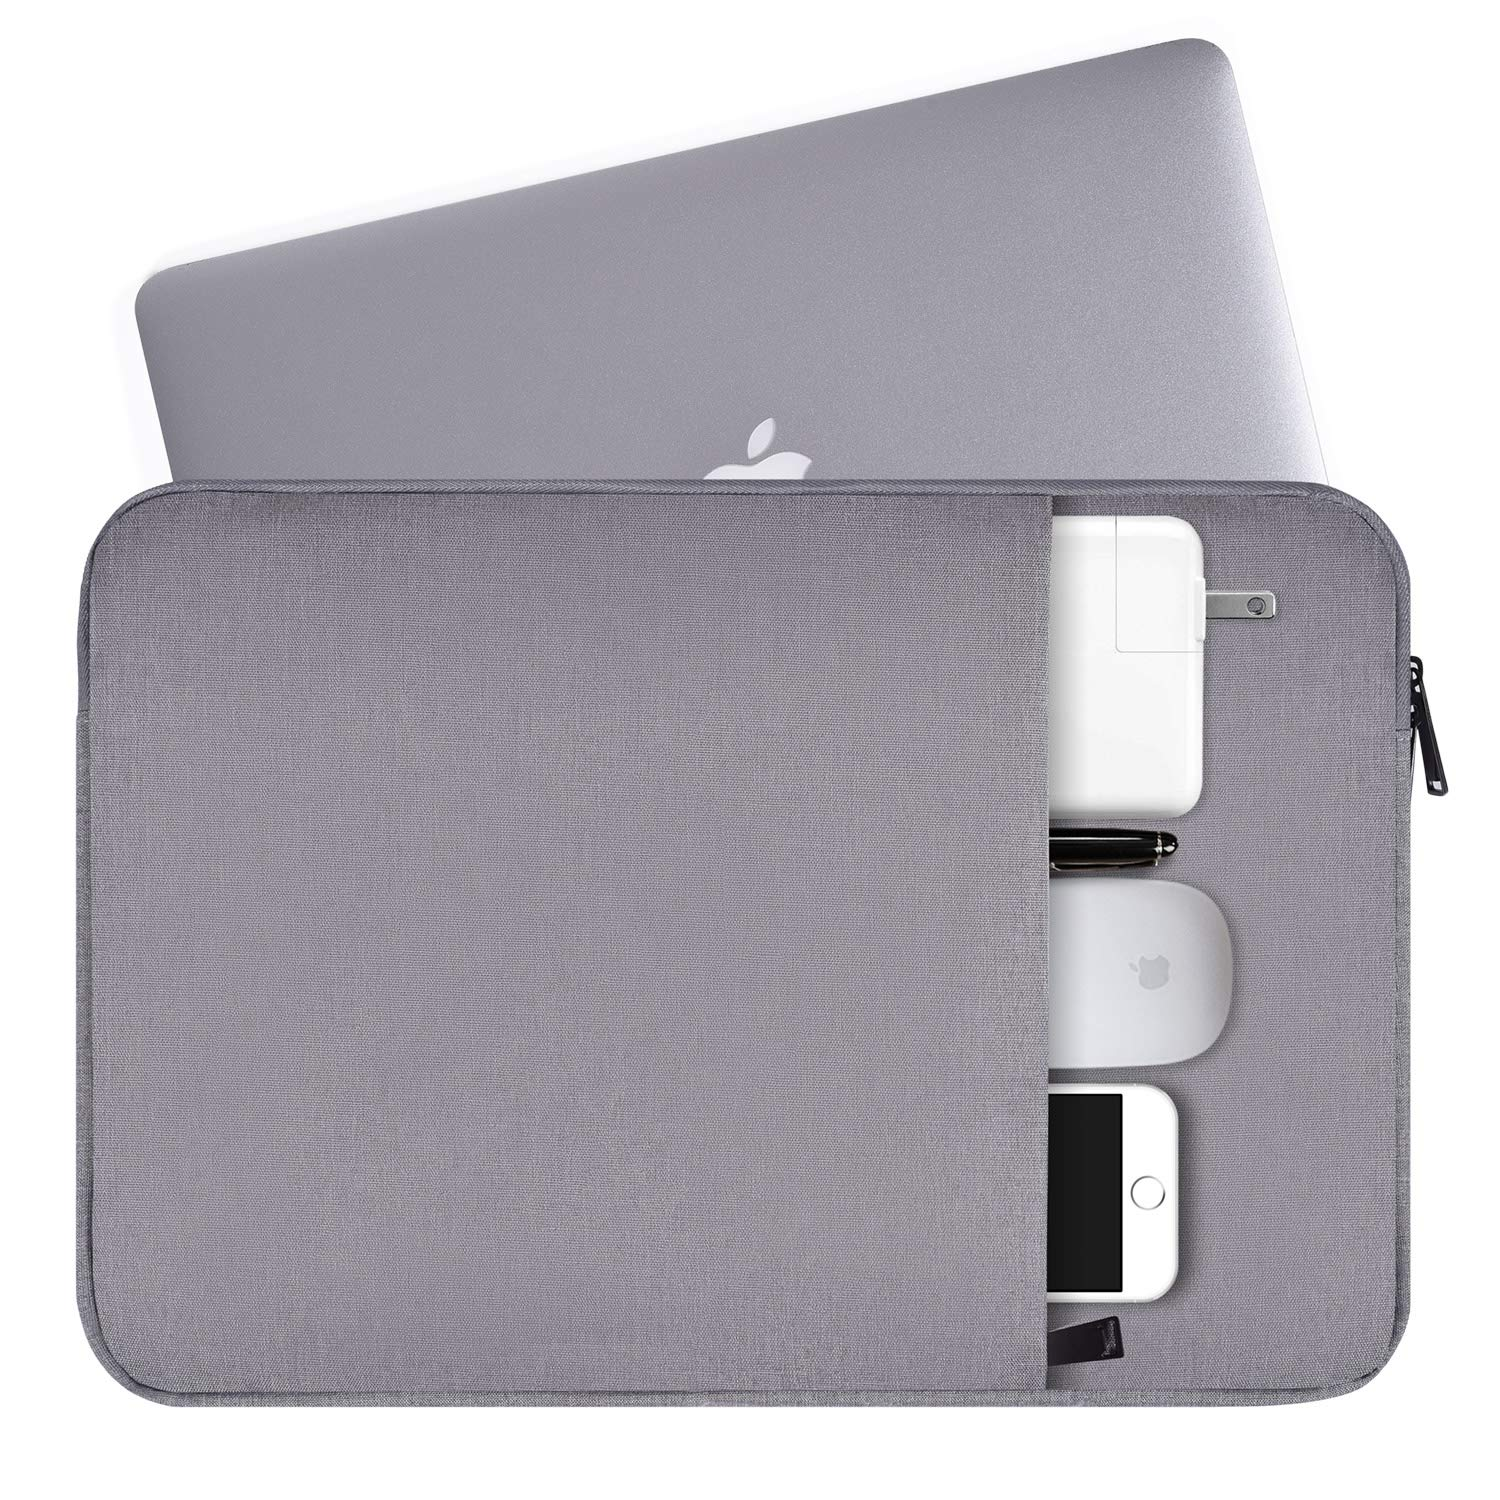 Funda Para Laptop De 15.6 Acer Aspire, Dell Inspiron (gris)